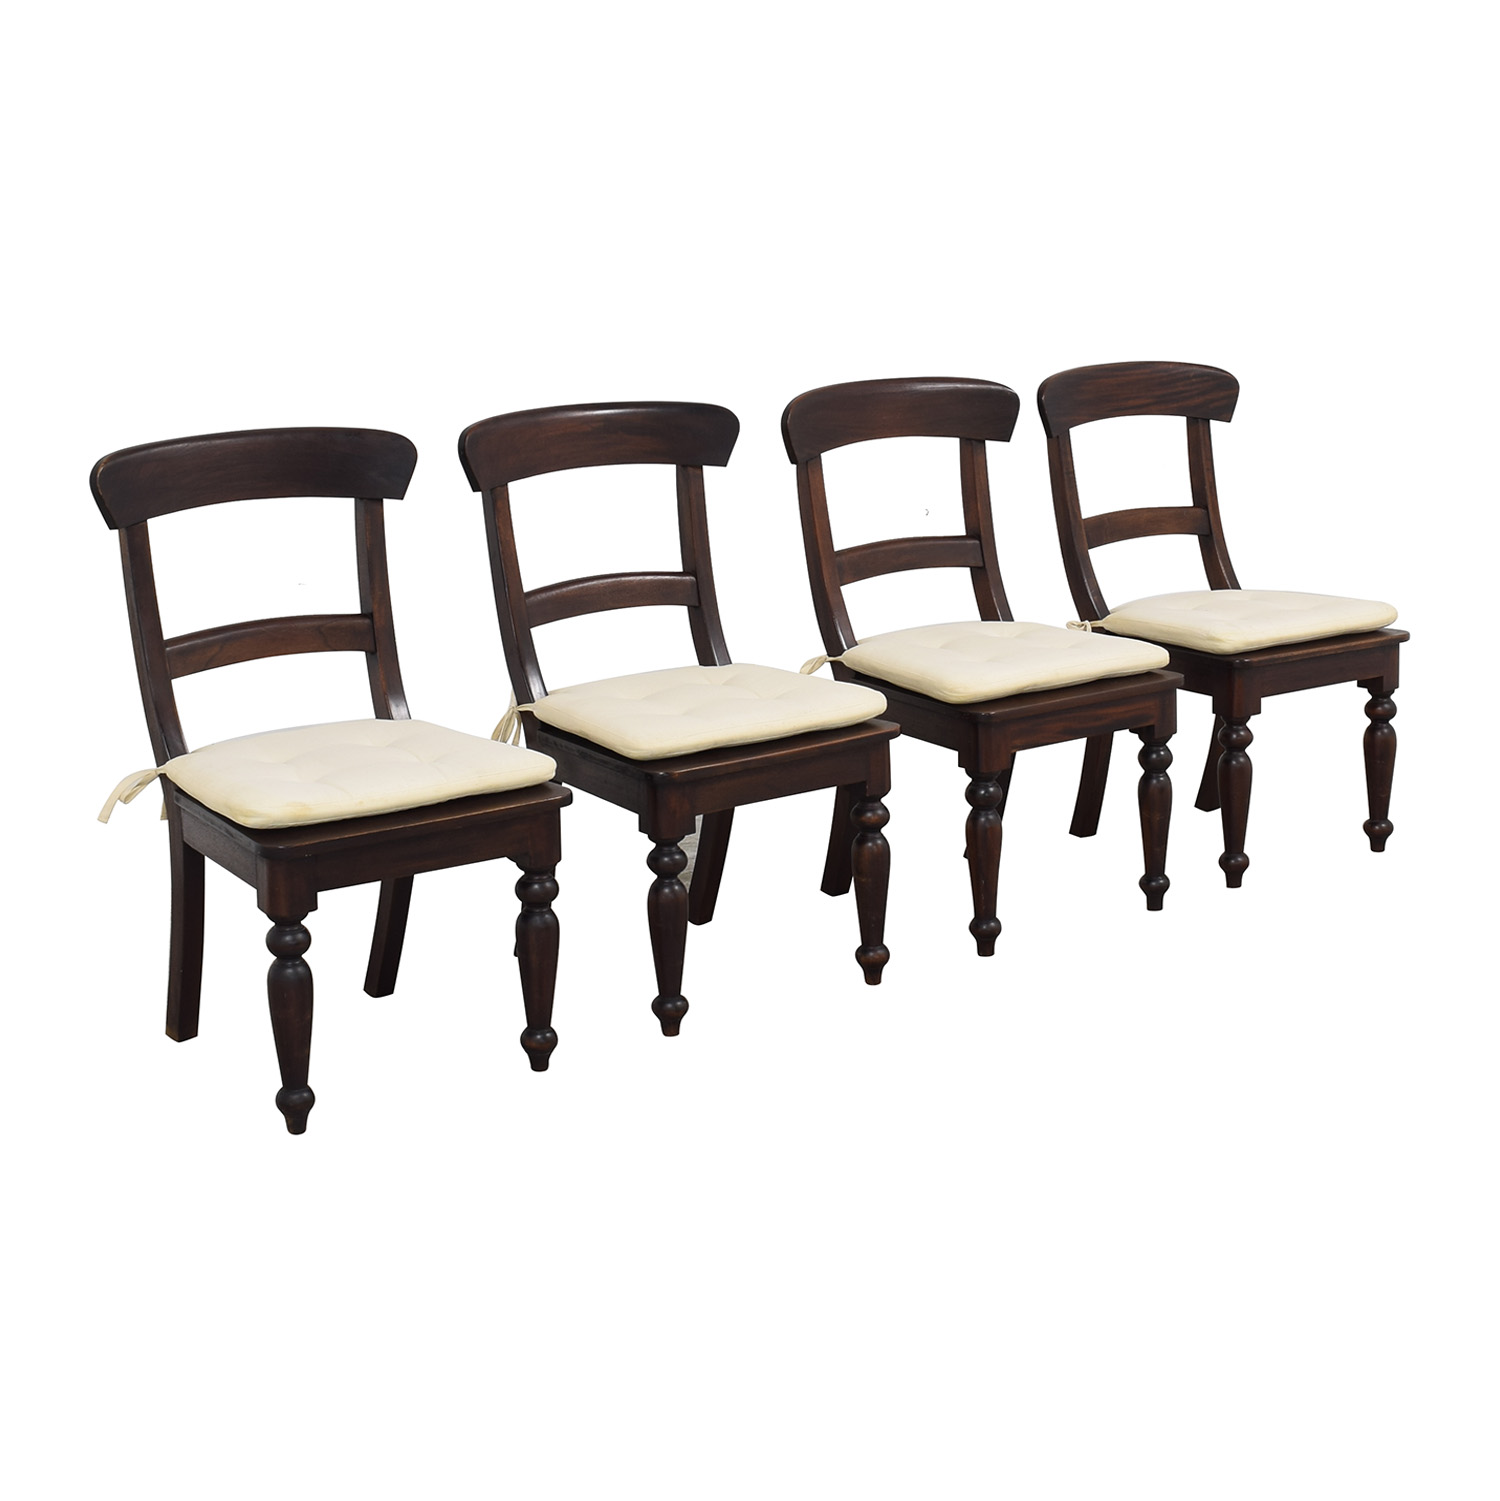 Crate & Barrel Farmhouse Dining Chairs Crate & Barrel